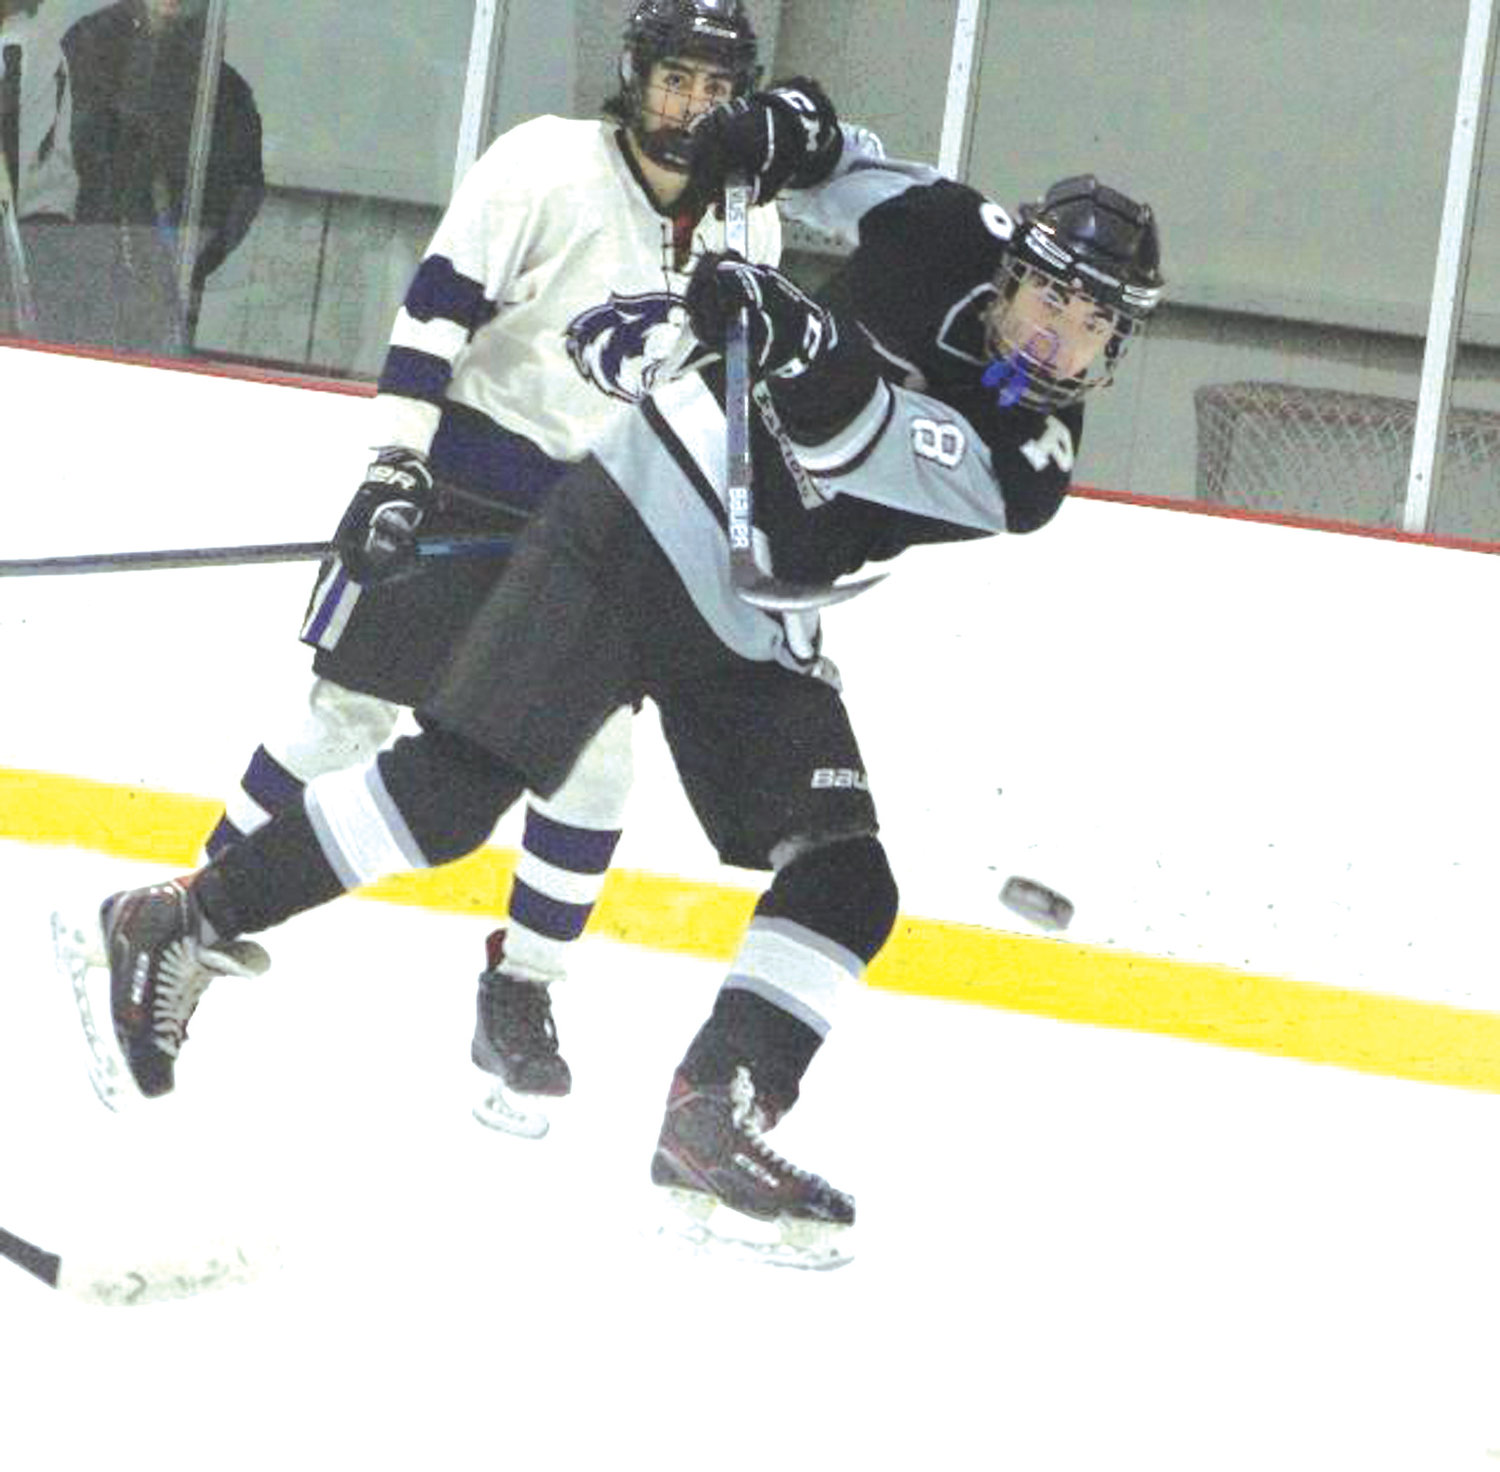 SLAPSHOT: Pilgrim's Sam Clements fires a shot in the semis.